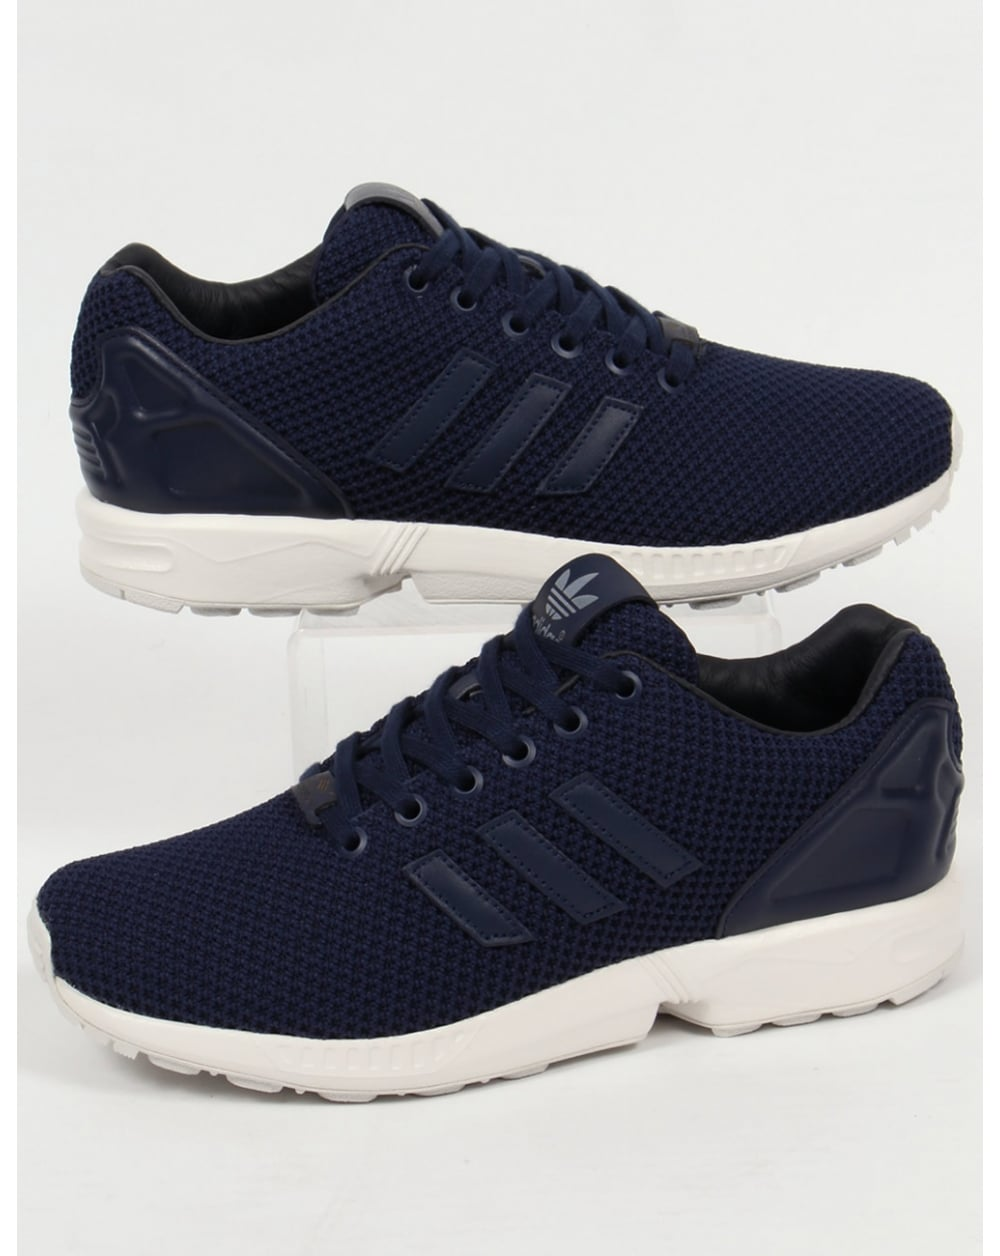 dbe93119e798a Zx Flux Navy White Related Keywords   Suggestions - Zx Flux Navy ...